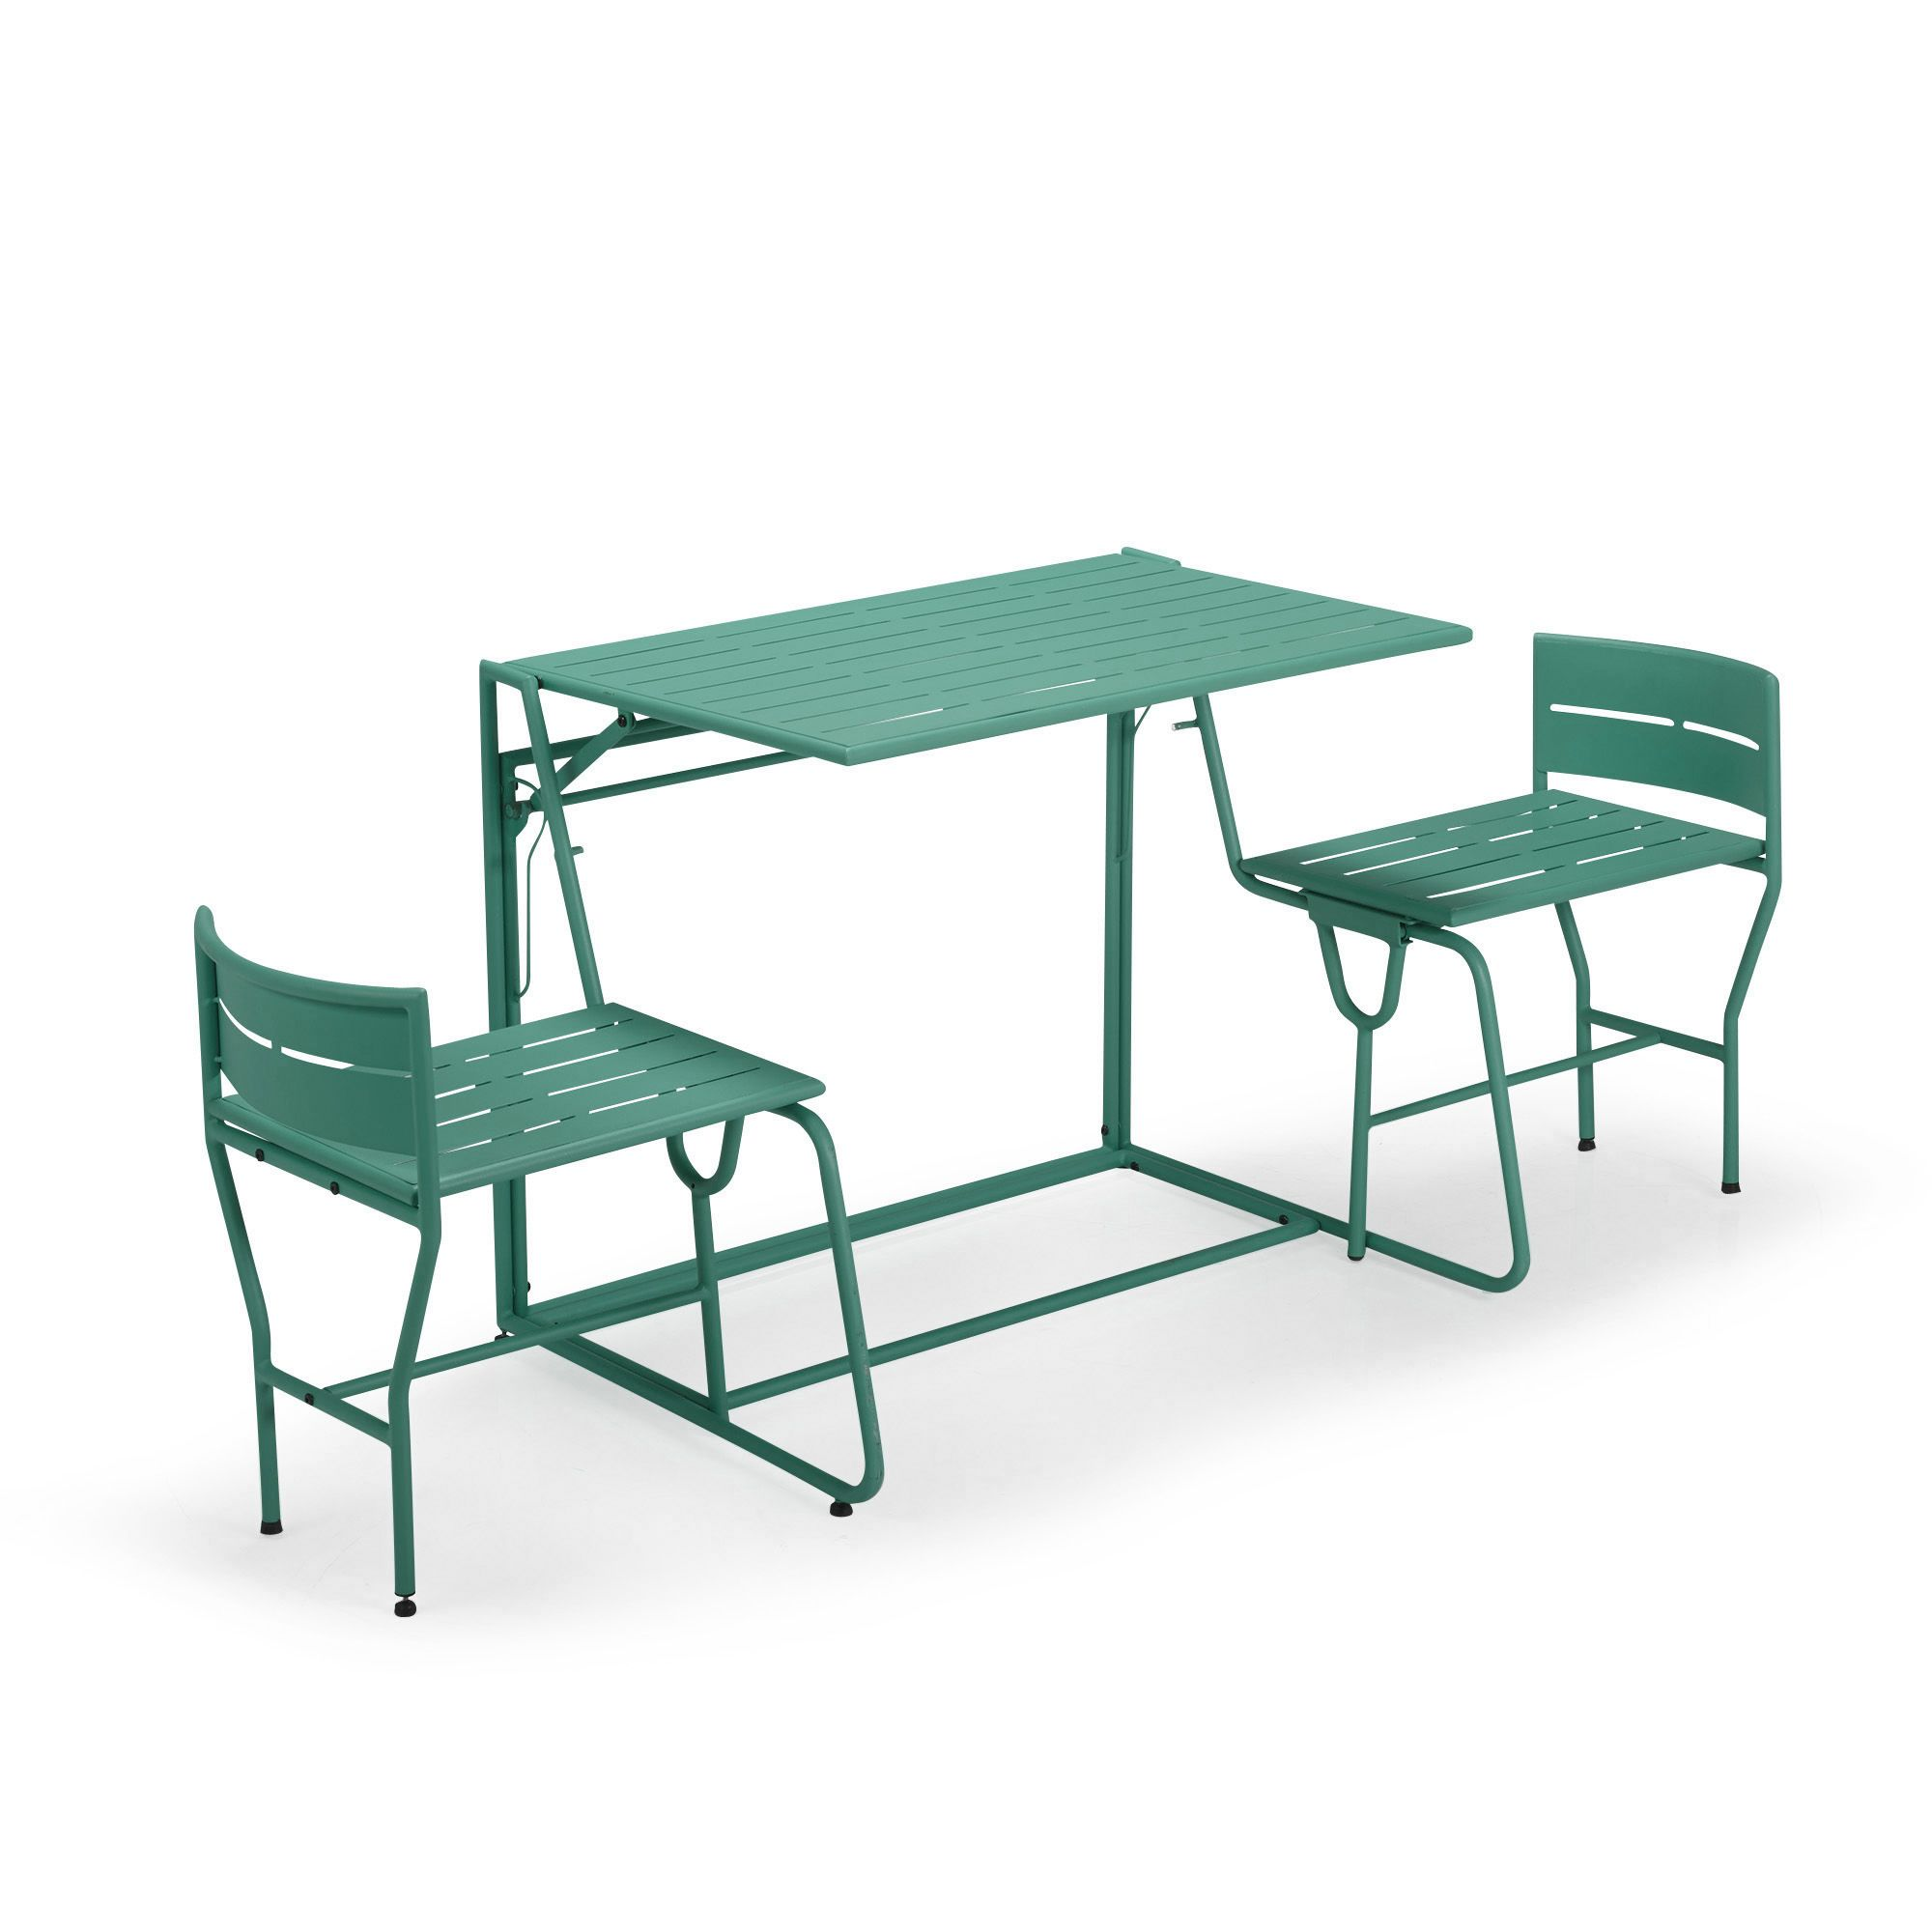 Salon-de-balcon-jardin-design-transformable-2-en-1-picnic-alinea-03